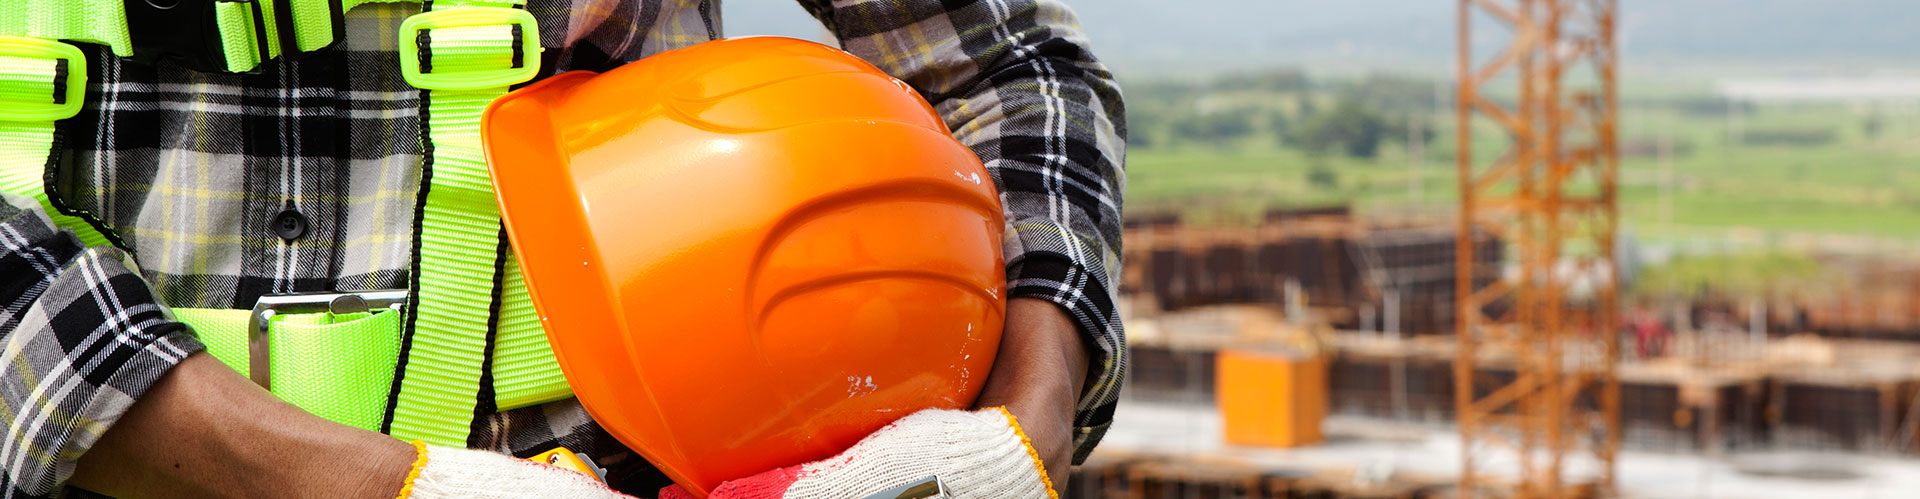 tips-work-injury-prevention-rogers-mn_header-safety